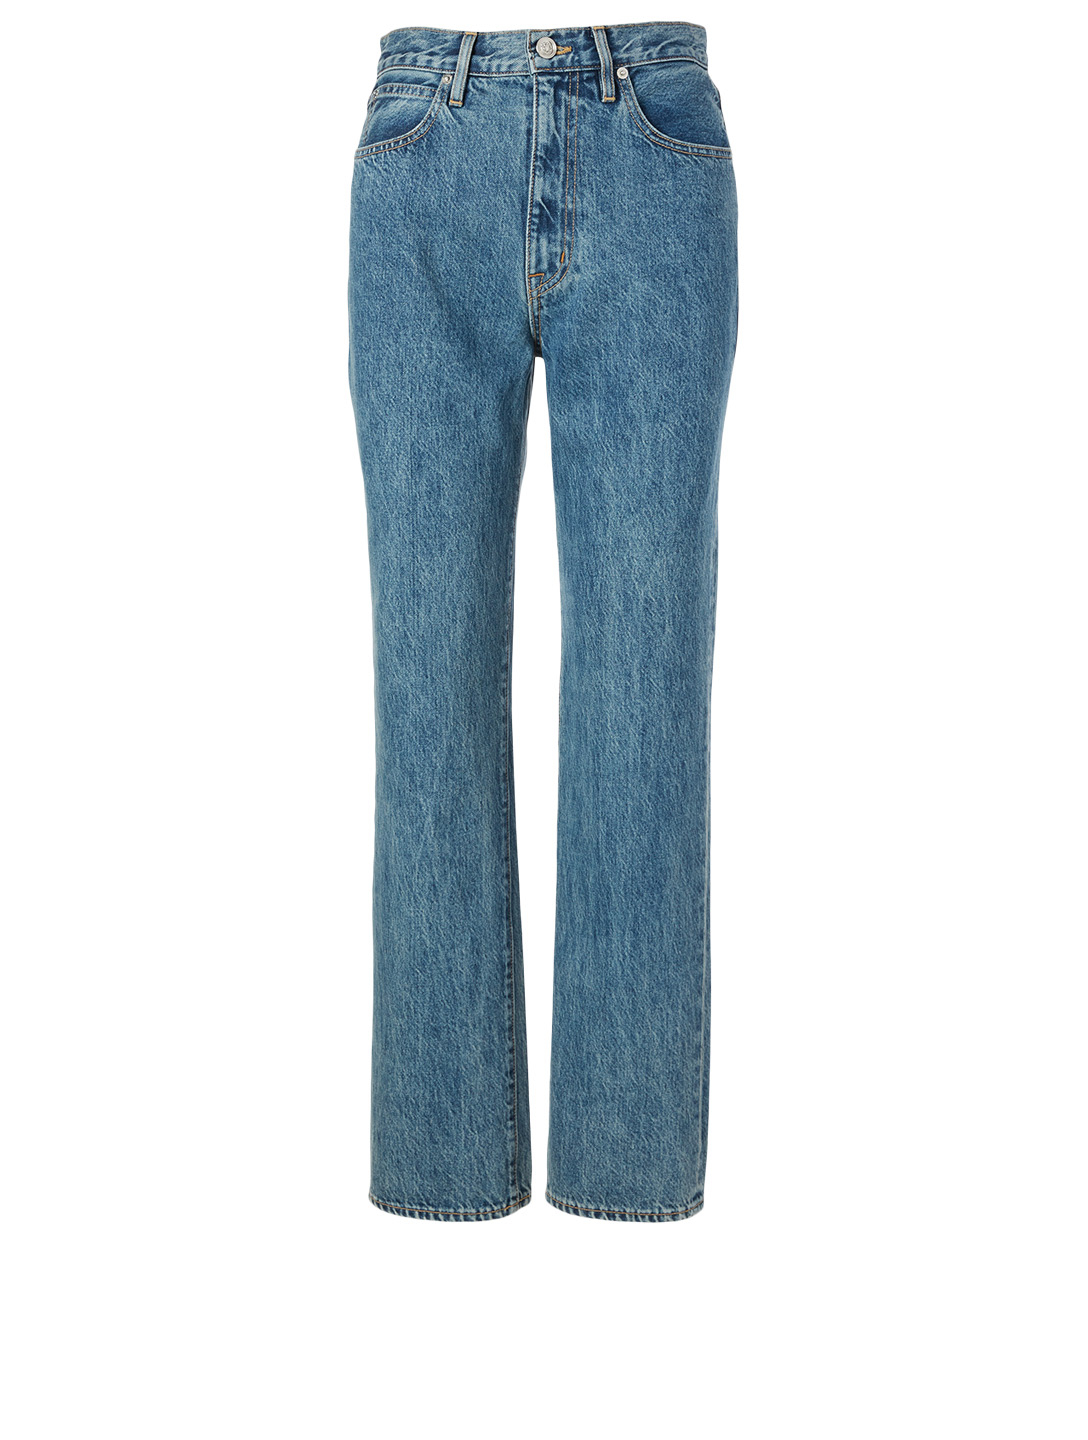 SLVRLAKE London High-Waisted Straight Jeans Women's Blue